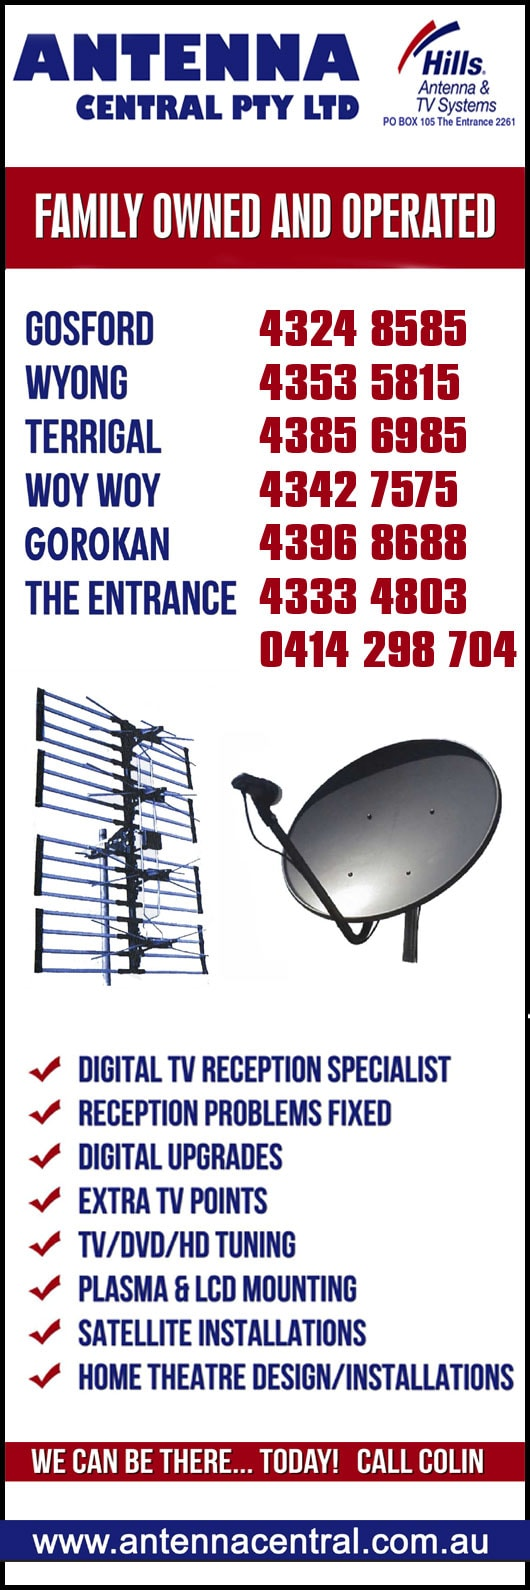 Antenna Central Pty Ltd - TV Antenna Services - The Entrance